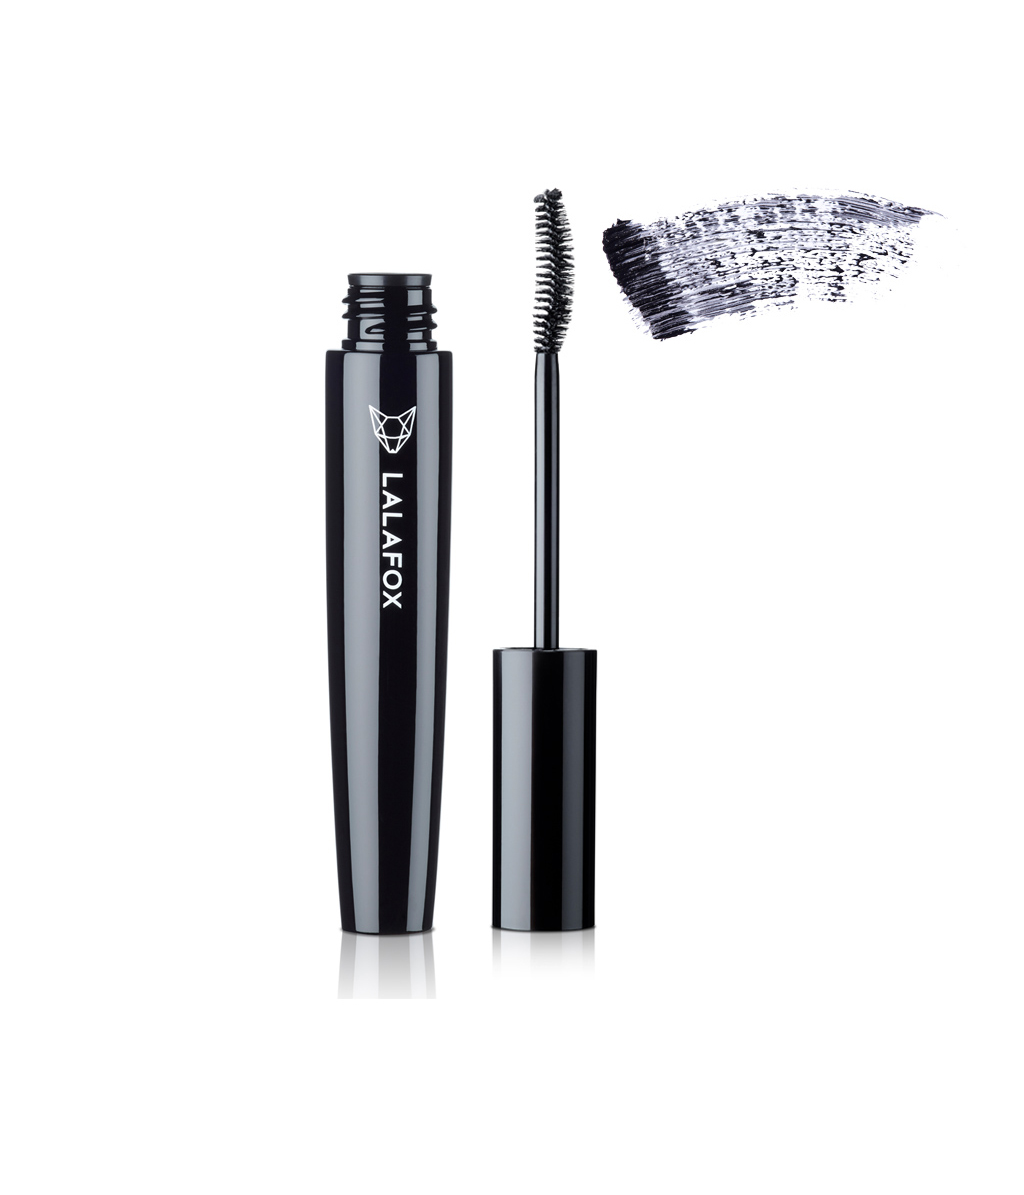 Chuốt mi LALAFOX Touch up Mascara Separate Lash